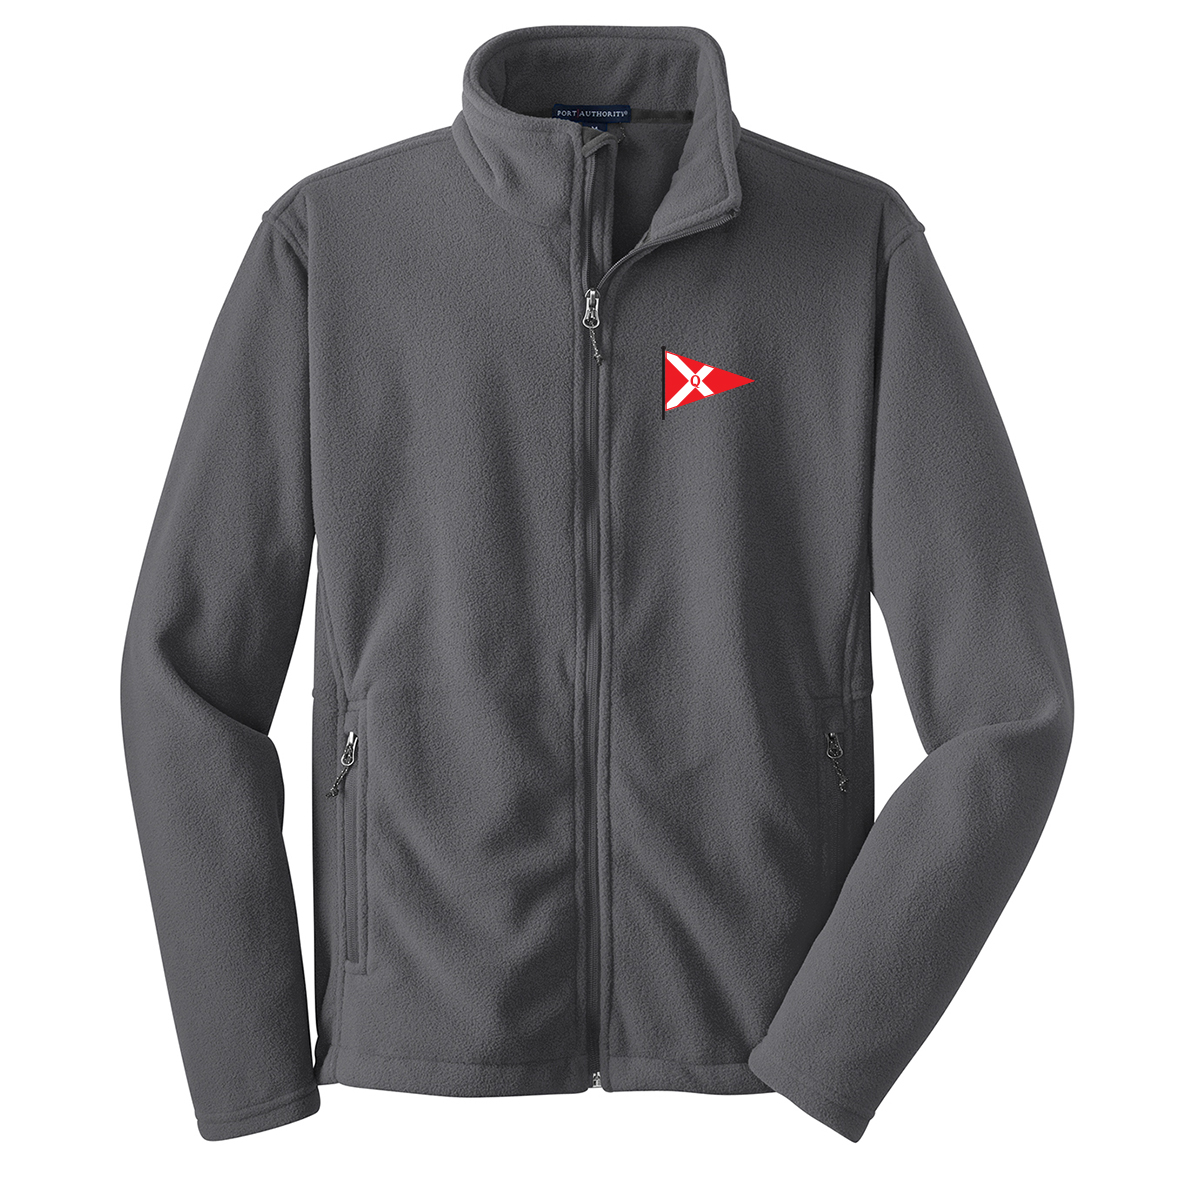 Quissett Yacht Club - Youth Value Fleece Jacket (QYC503)